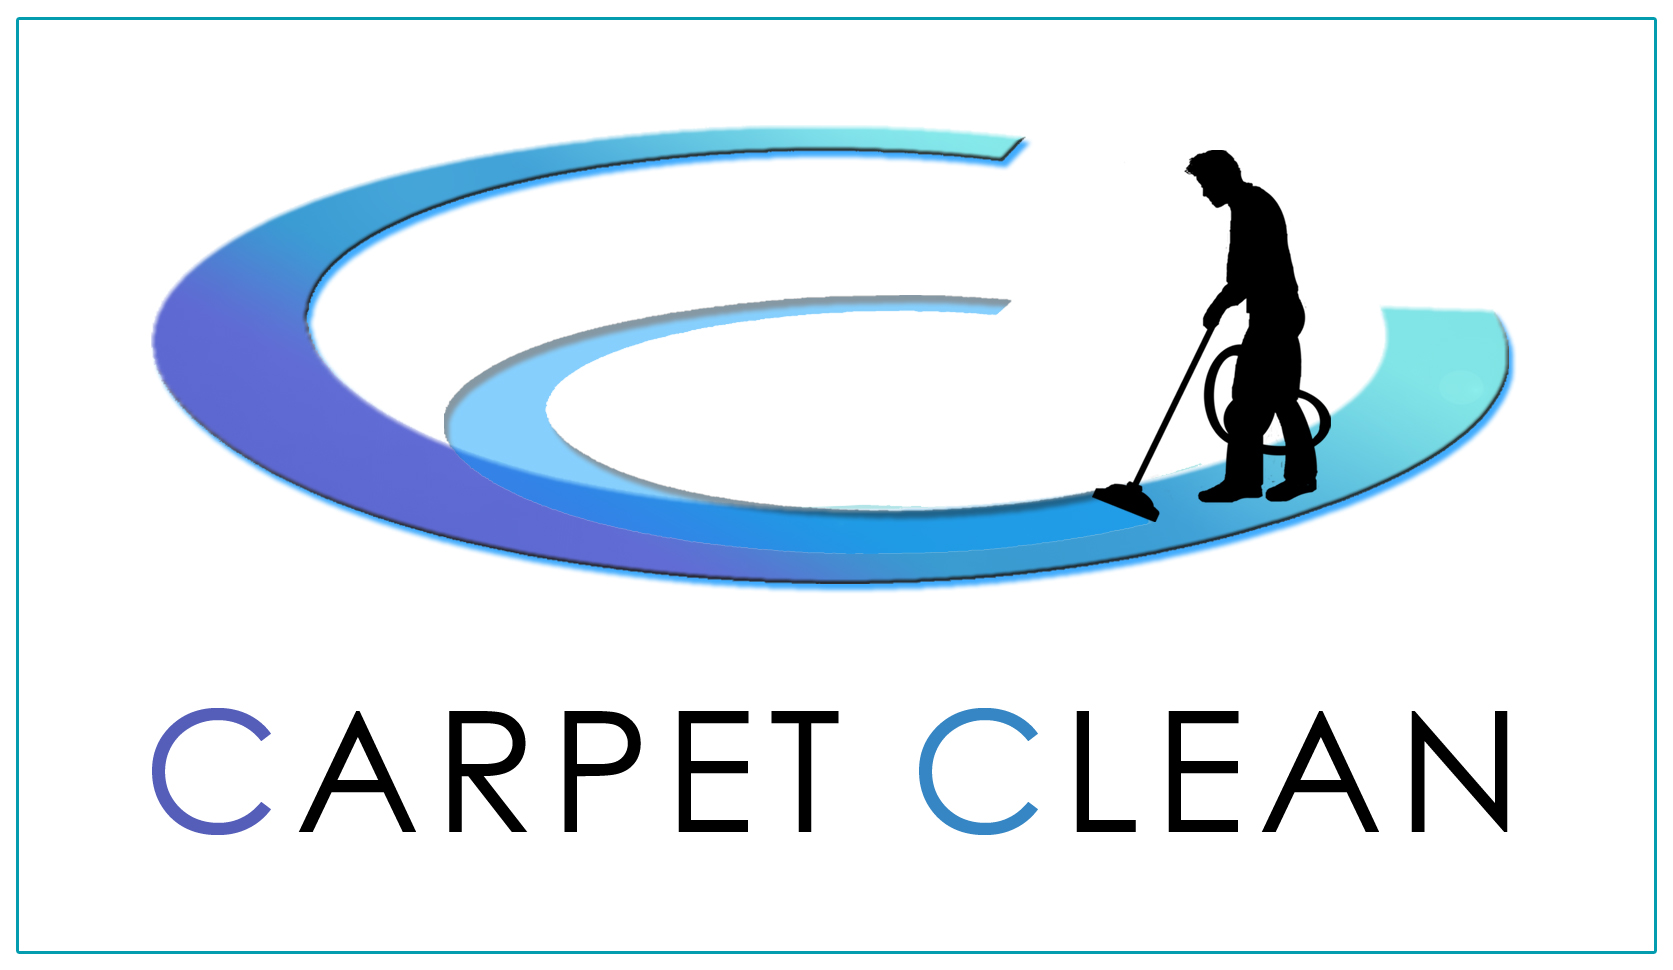 Carpet Cleaner Coupons Best Home Design And Decorating Shampoo